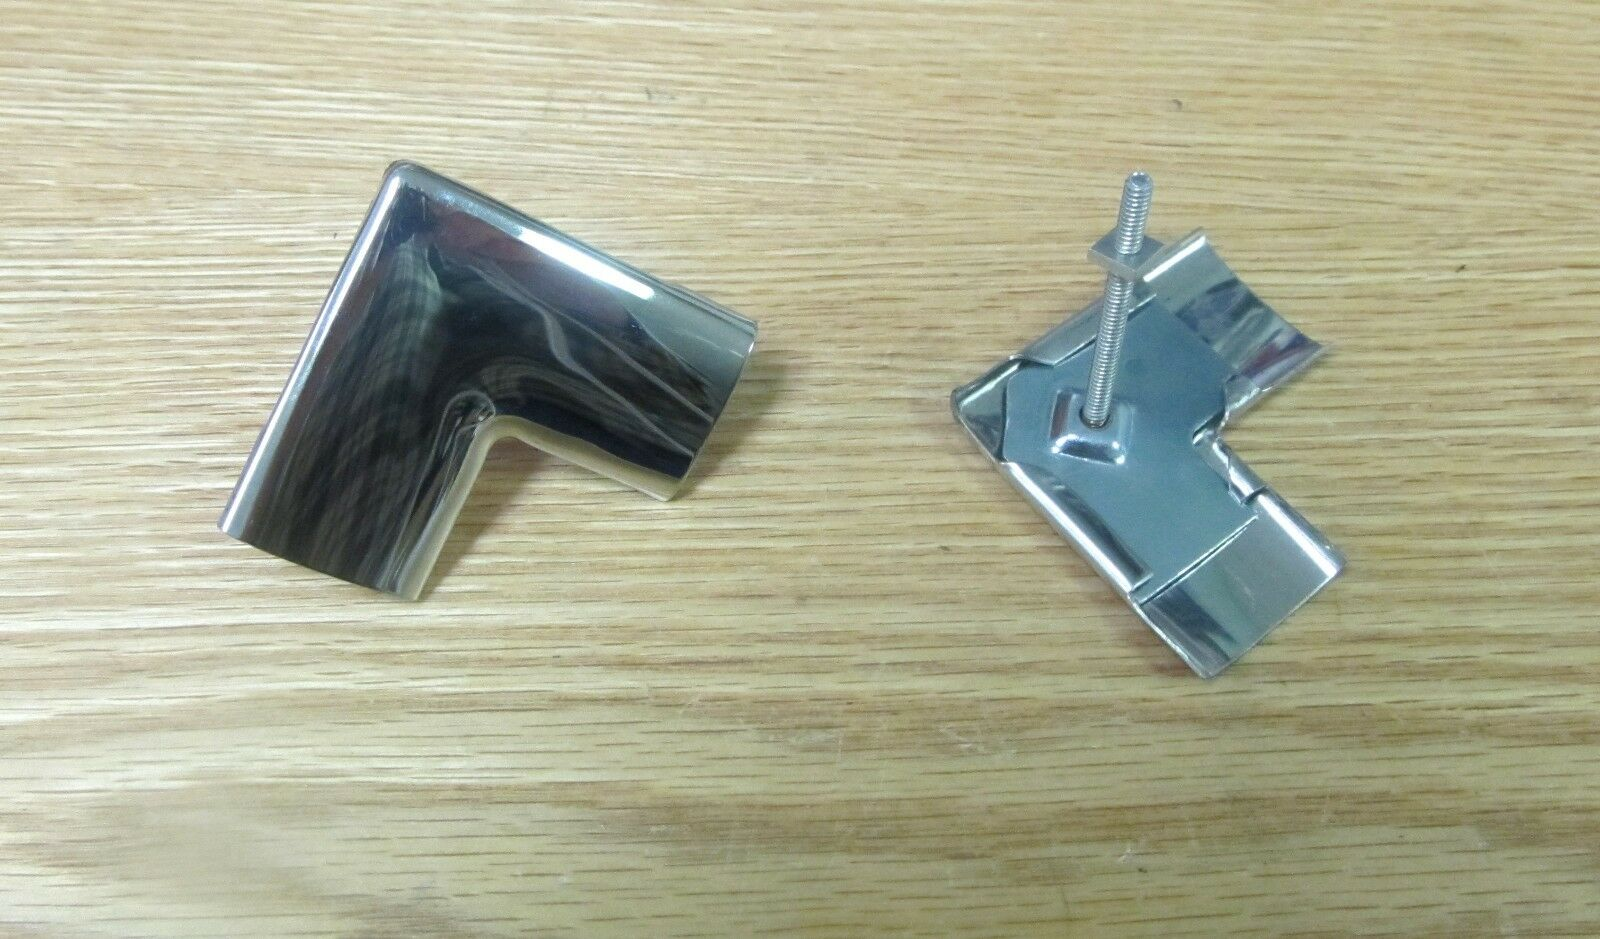 1955 56 57 Chevy Rear Window Upper Corner Moldings With Clip Hardtop 1957 Side Seal 1 Of 2 See More